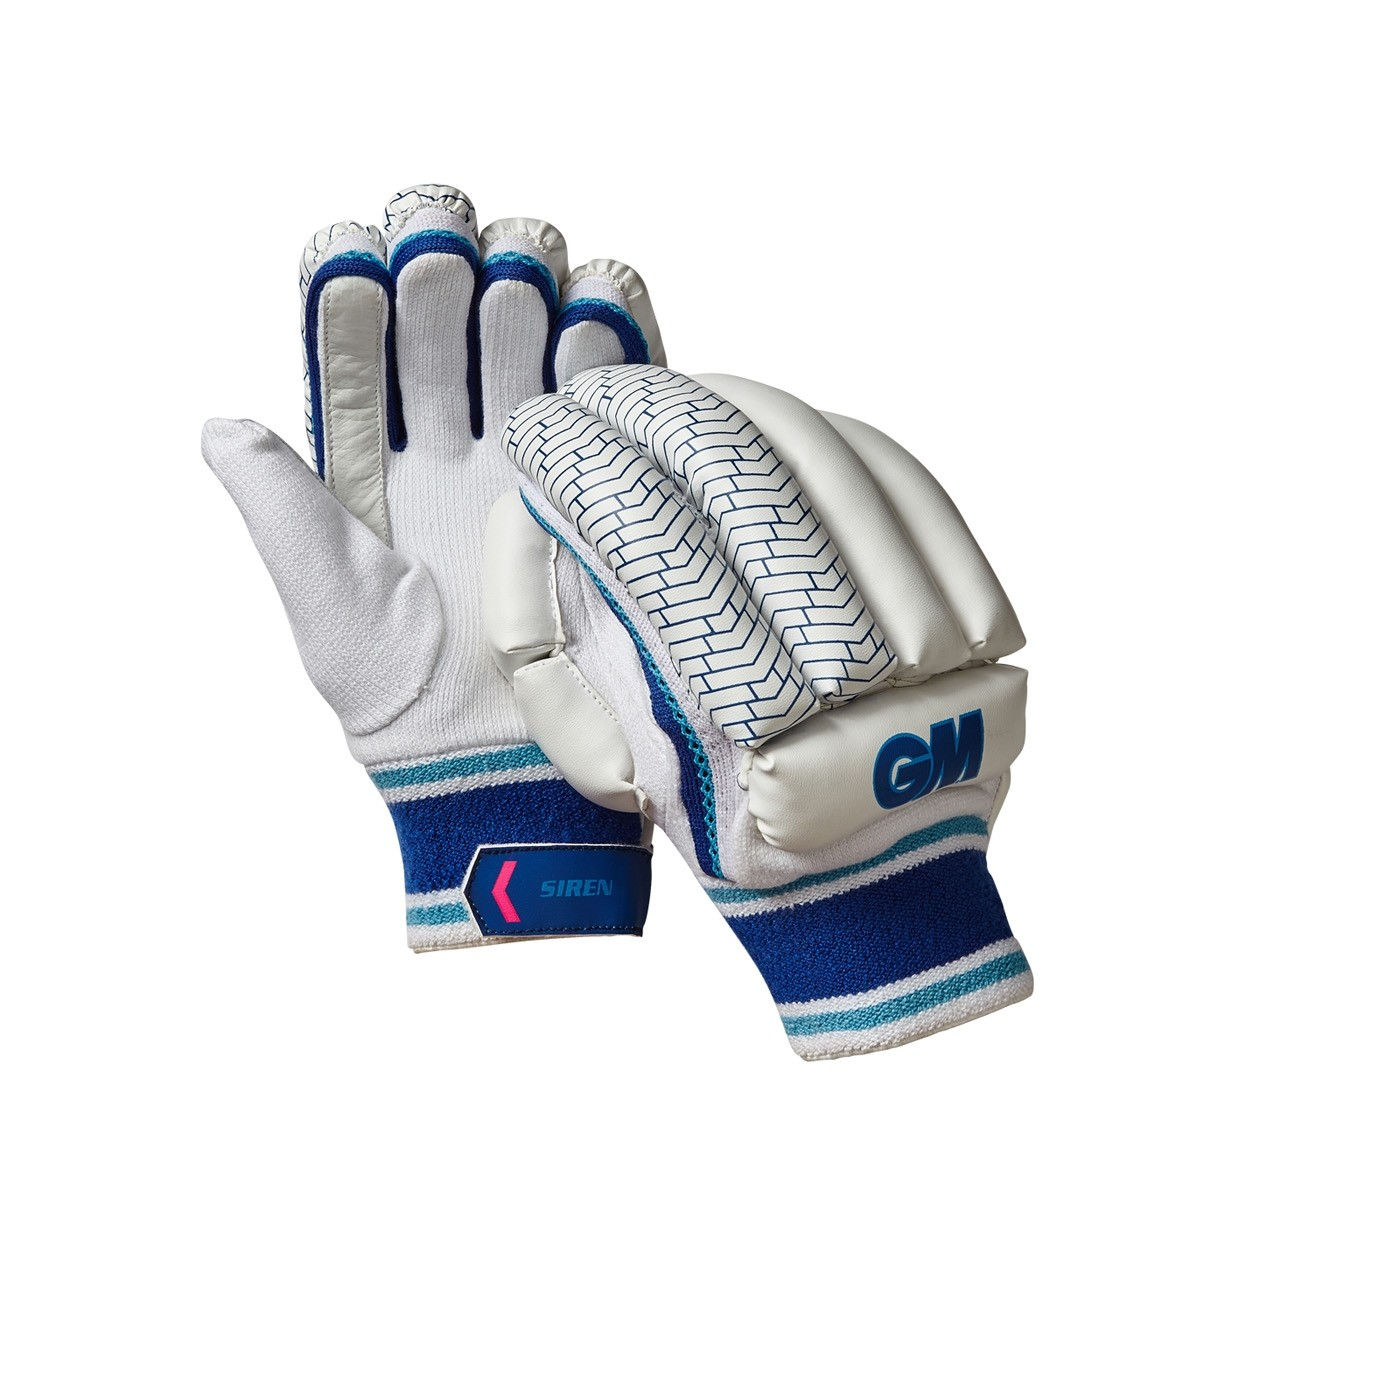 2020 Gunn and Moore Siren Batting Gloves